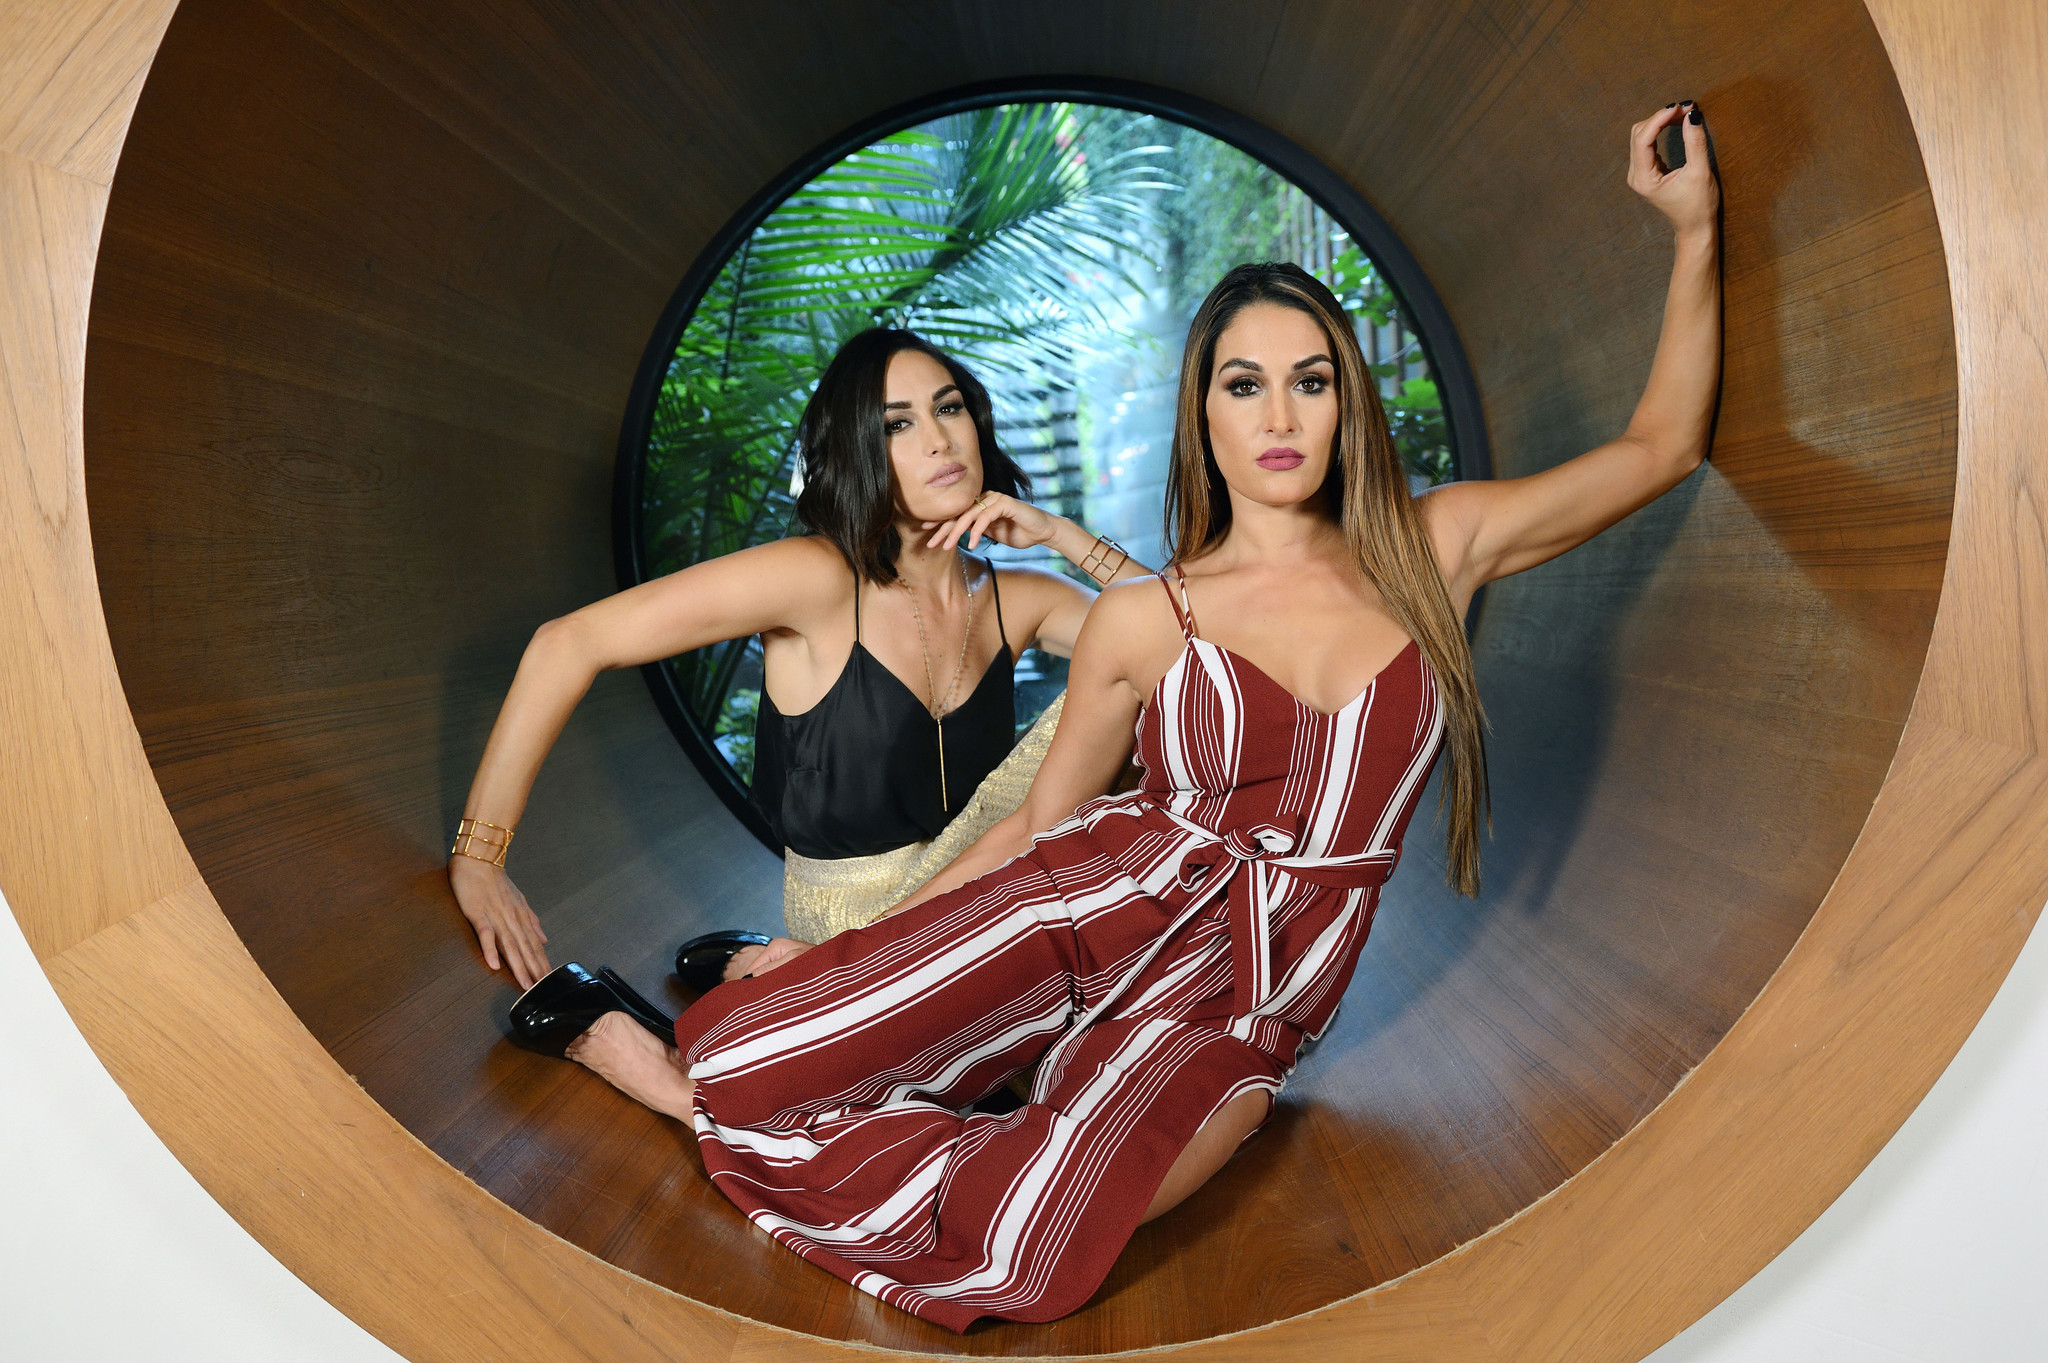 Twin stars Nikki and Brie Bella are being inducted into the WWE Hall of Fame